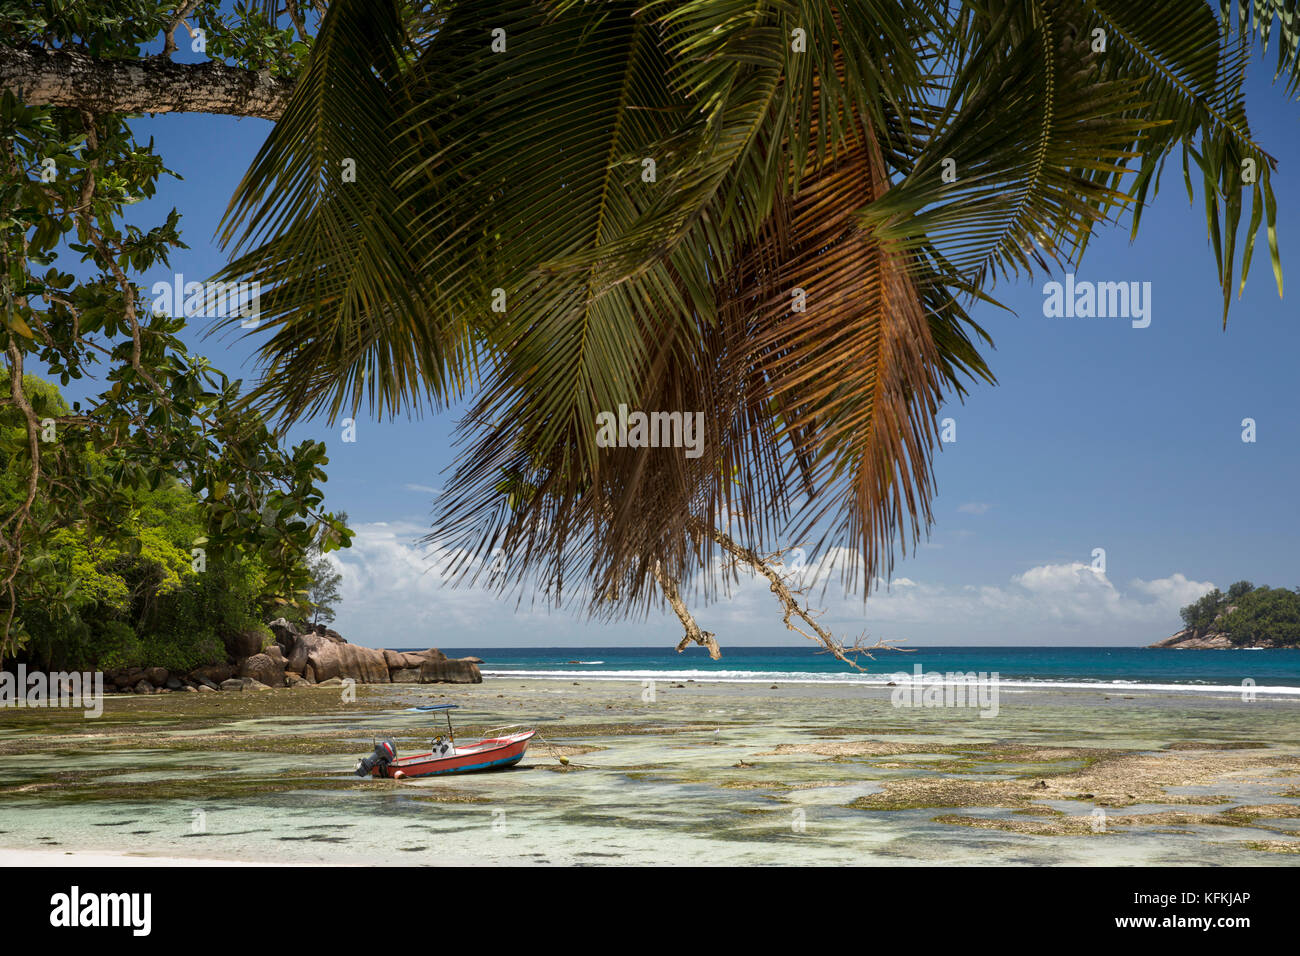 The Seychelles, Mahe, Baie Lazare, beach, boat in lagoon at low tide - Stock Image